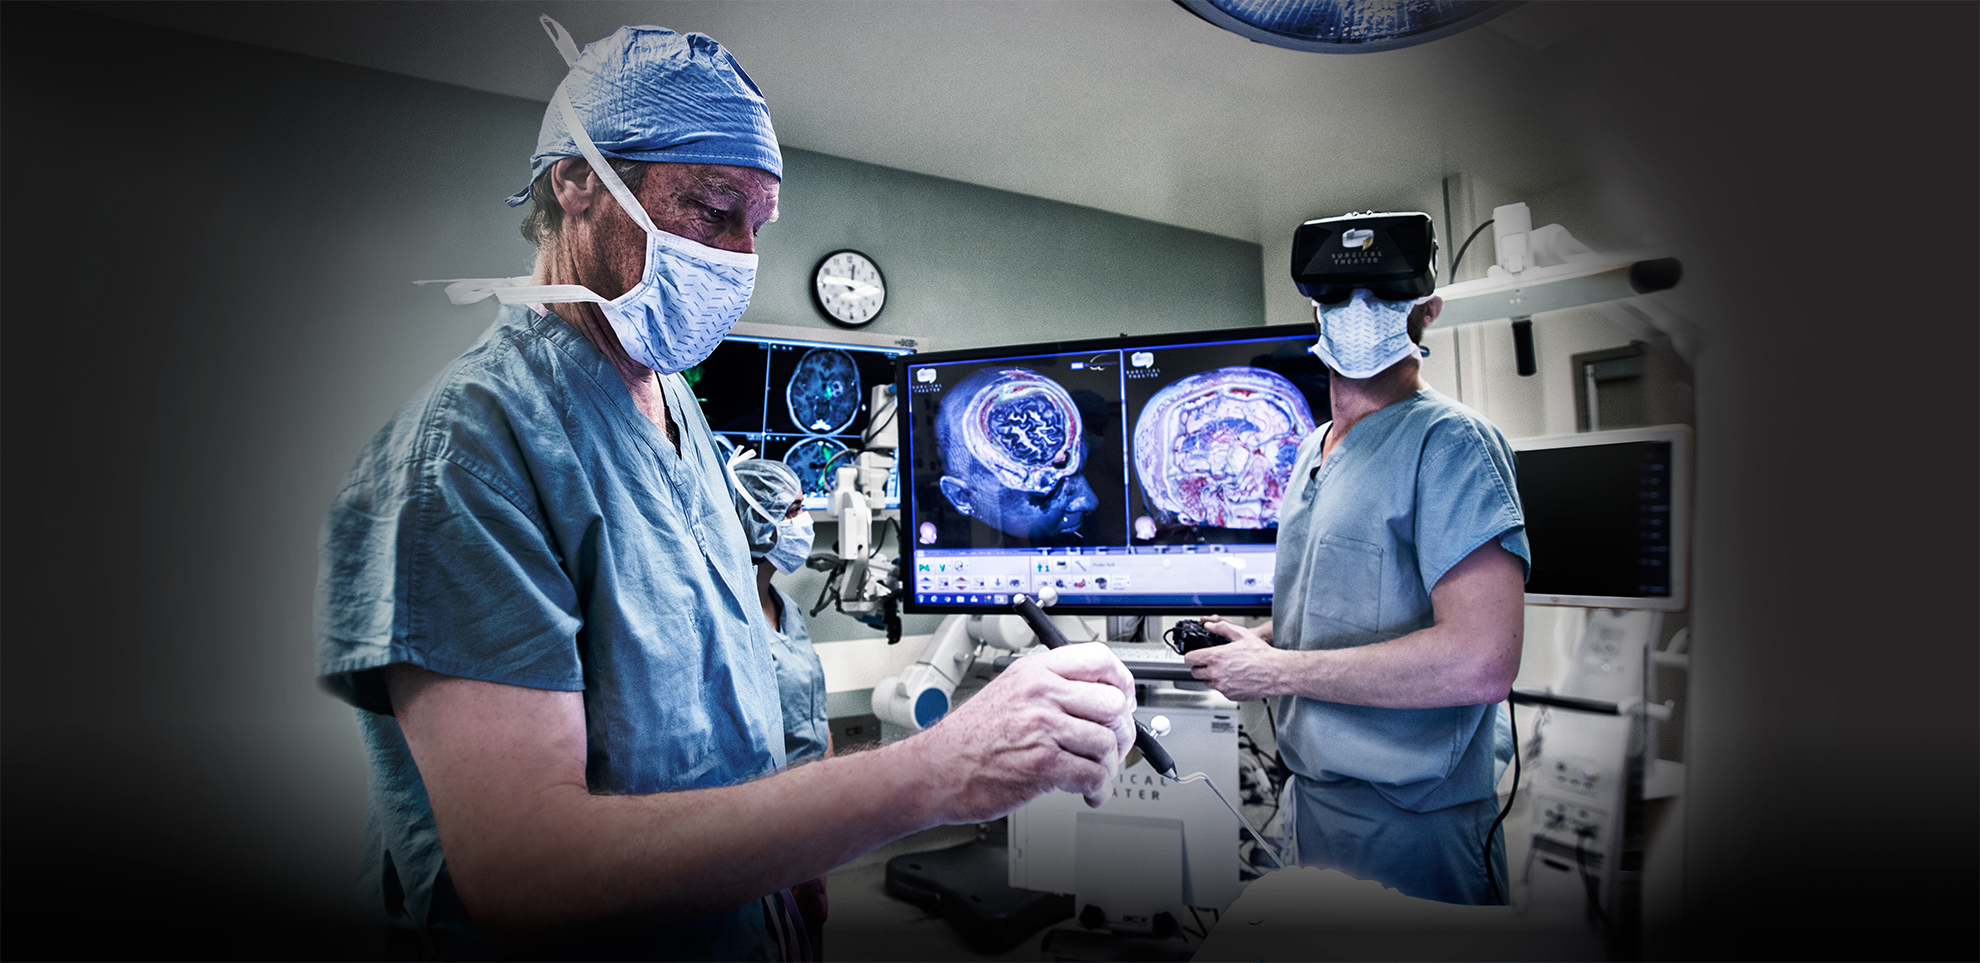 virtual reality technology medical health healthcare vr industry devices sector surgical medicine standard communication disrupting wanted members still communications inventions